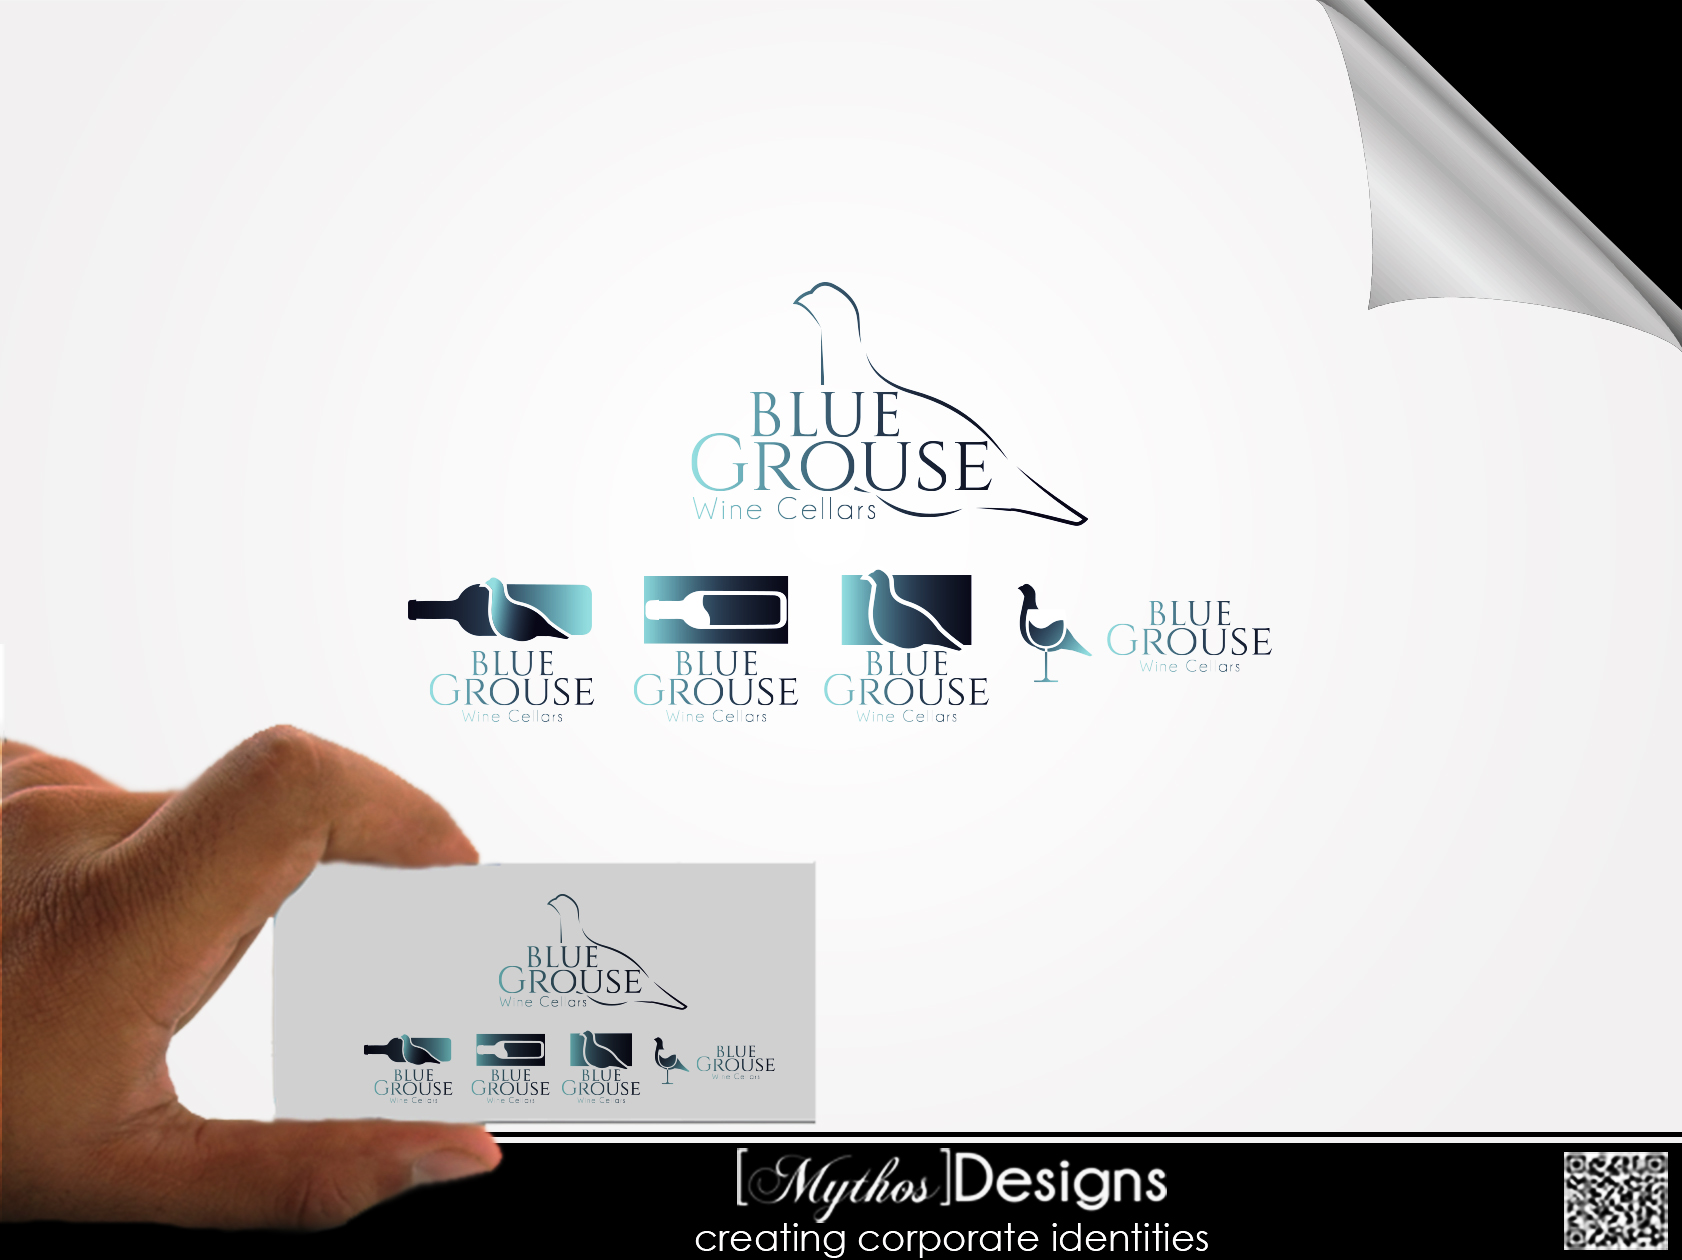 Logo Design by Mythos Designs - Entry No. 131 in the Logo Design Contest Creative Logo Design for Blue Grouse Wine Cellars.